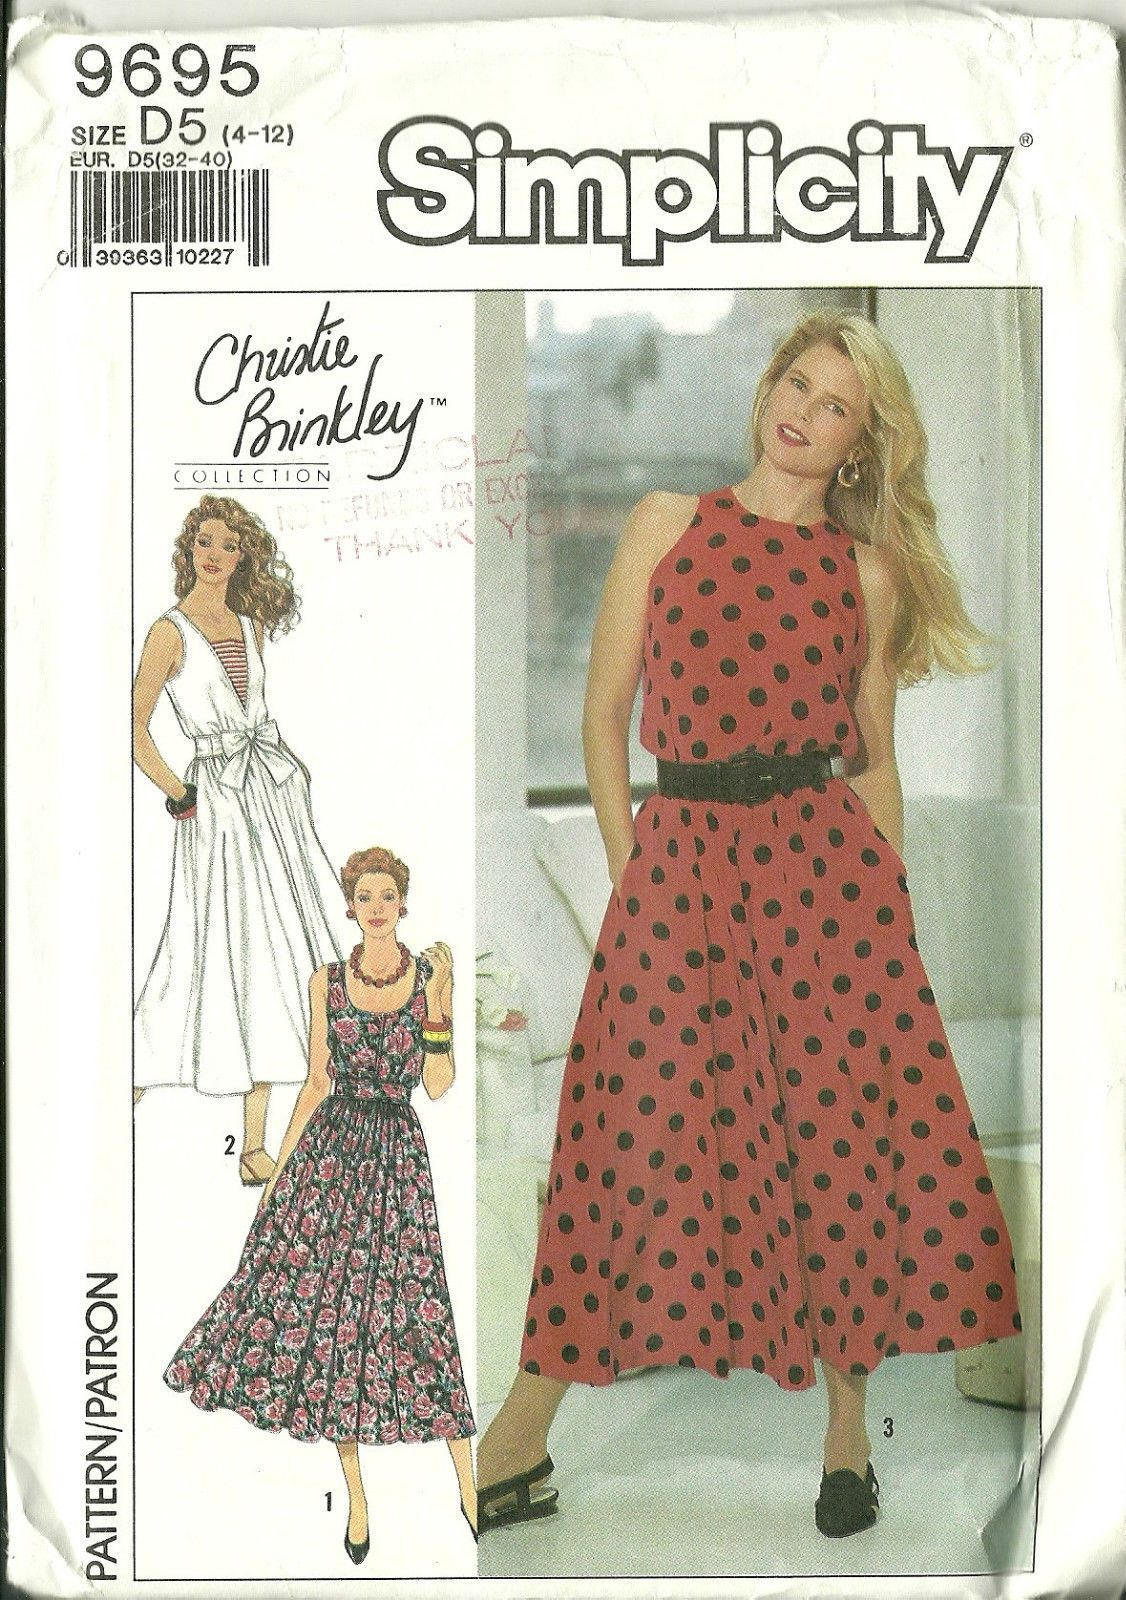 February 2 Happy birthday to Christie Brinkley Simplicity Sewing Pattern 9695